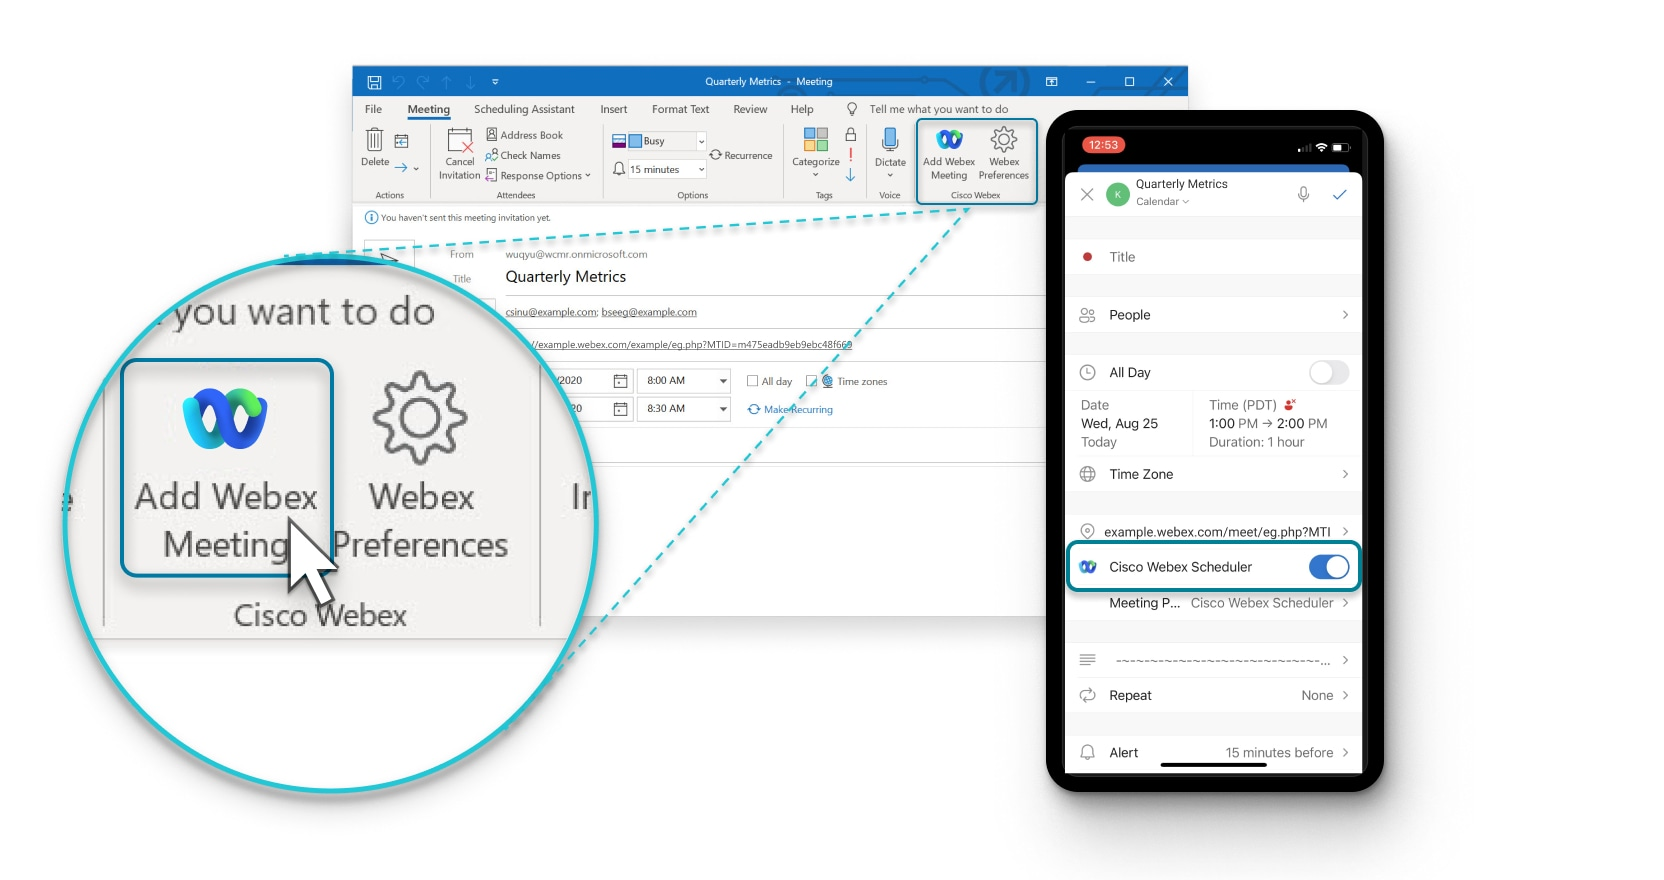 Microsoft Office Mac Fr Schedule And Join Meetings With Cisco Webex Meetings Scheduler For